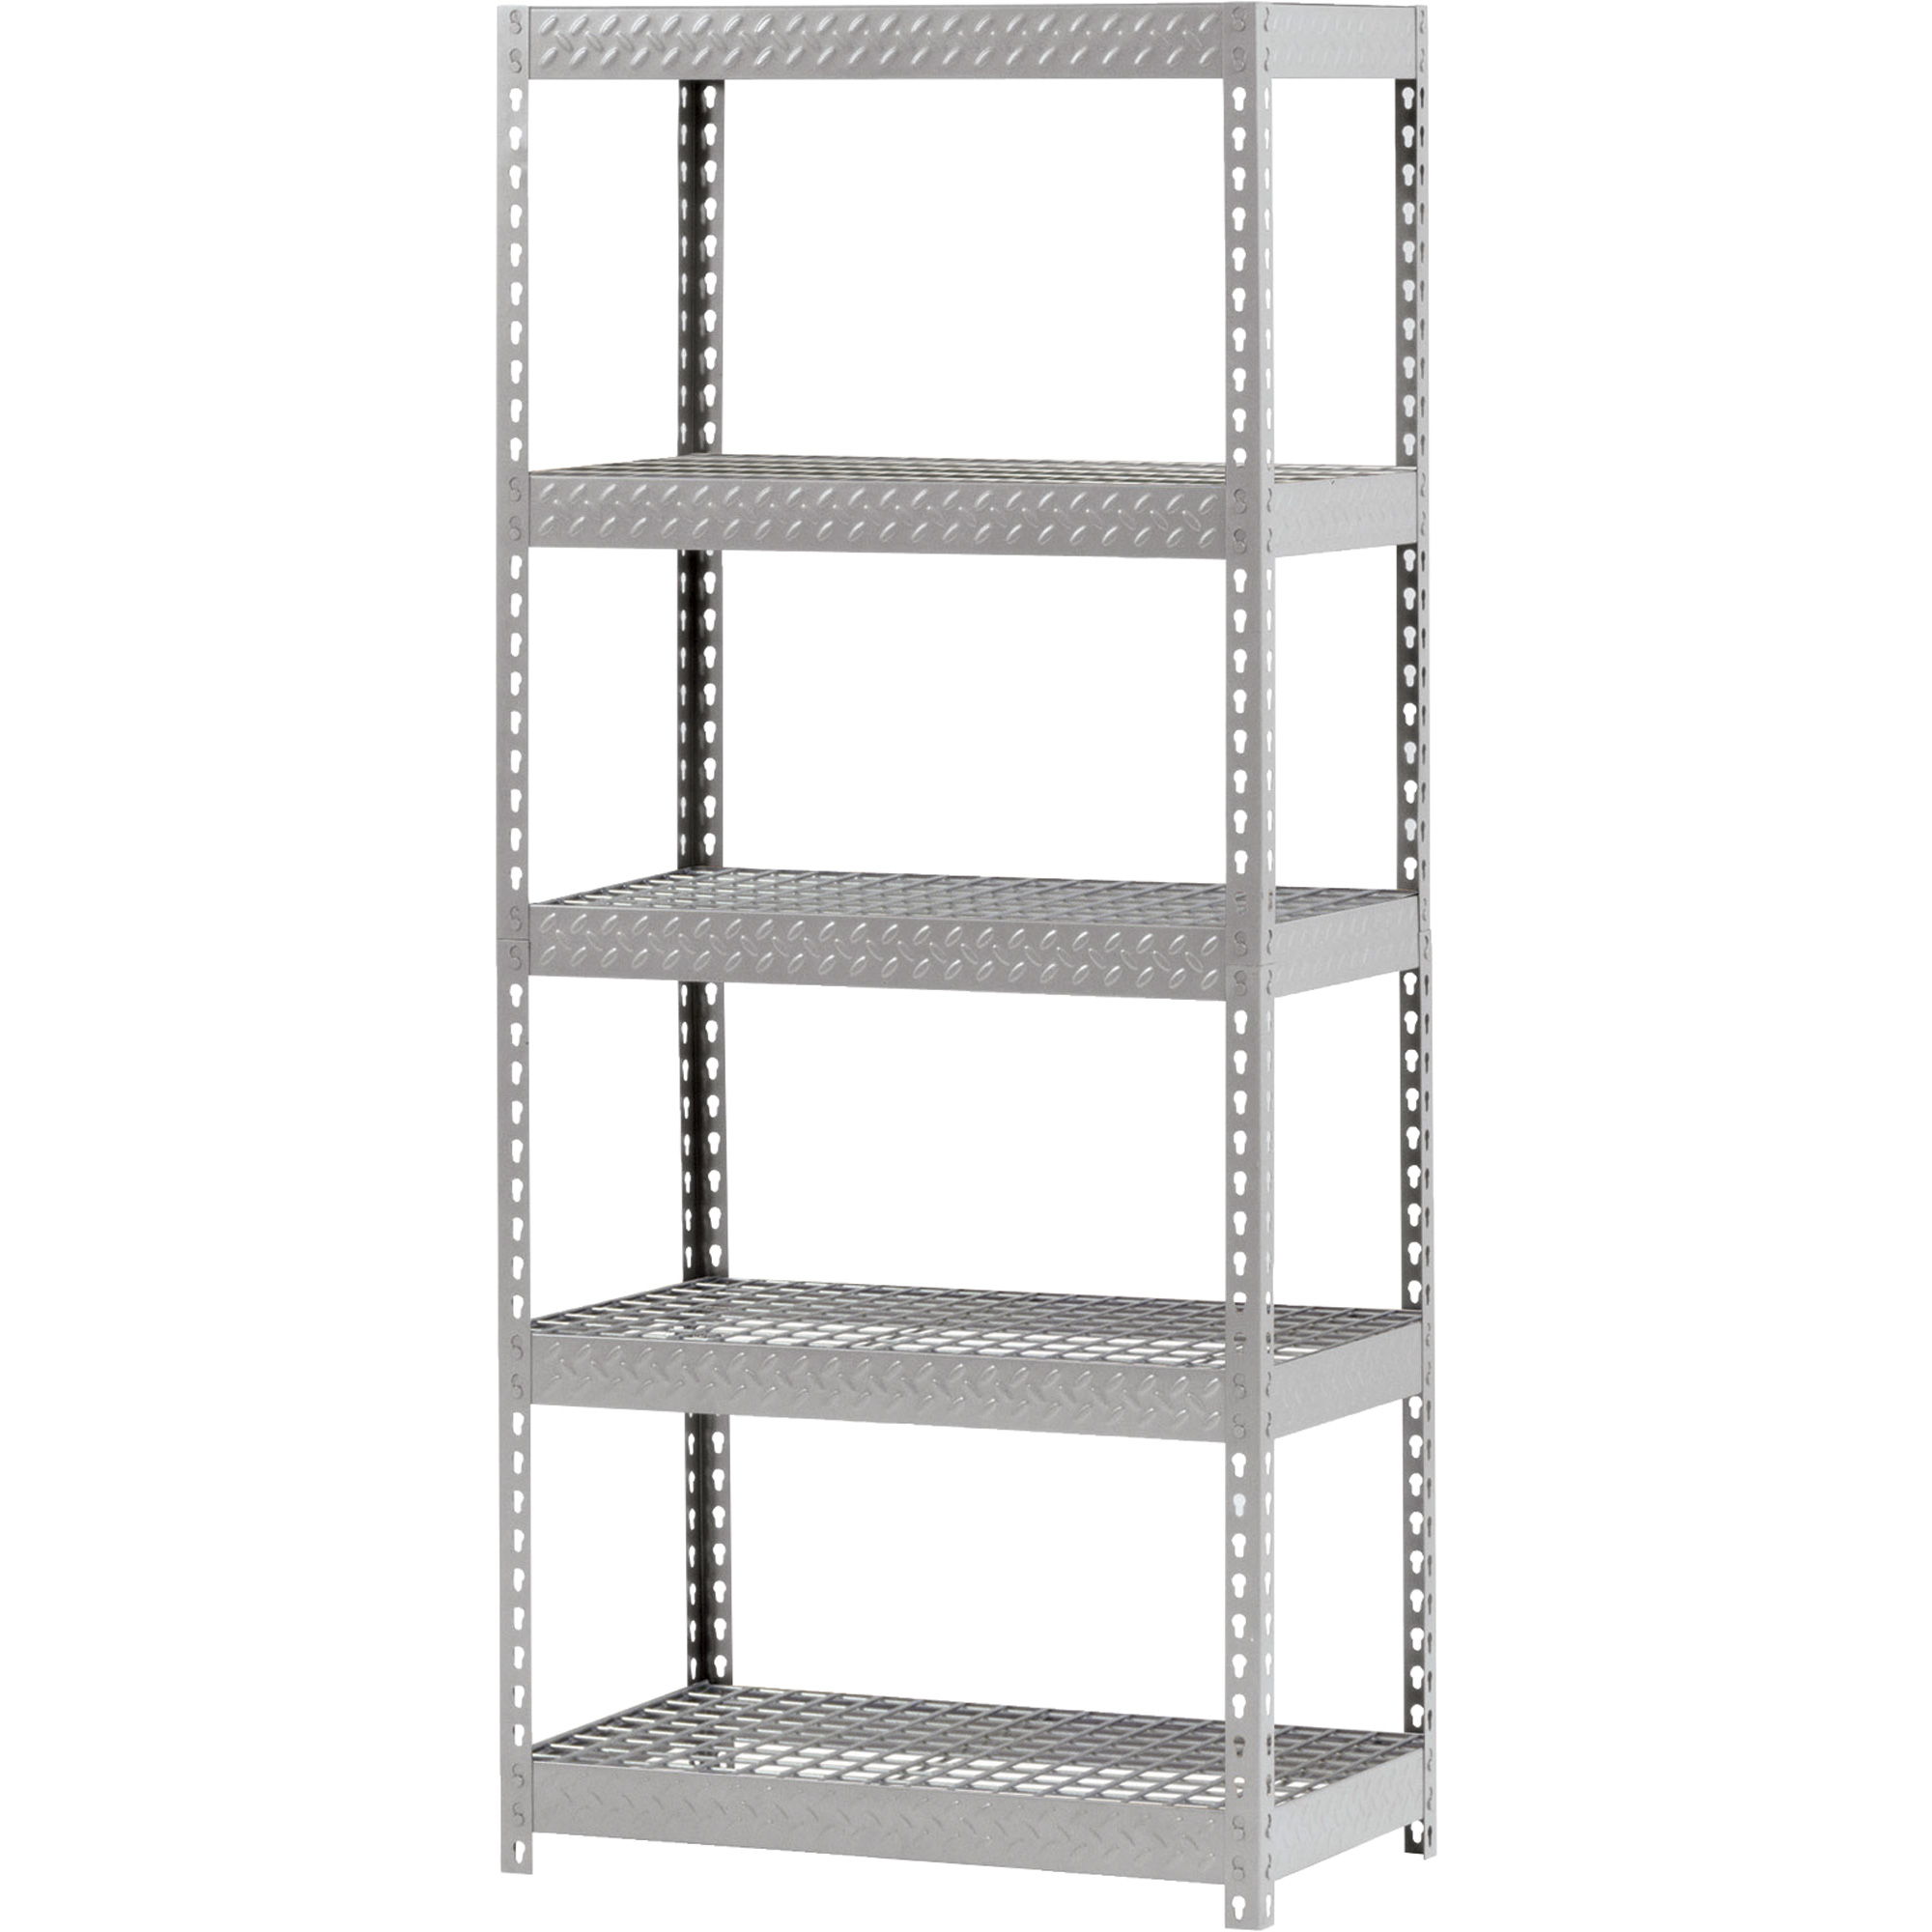 cozy white steel Edsal Shelving in five tier design for garage furniture ideas